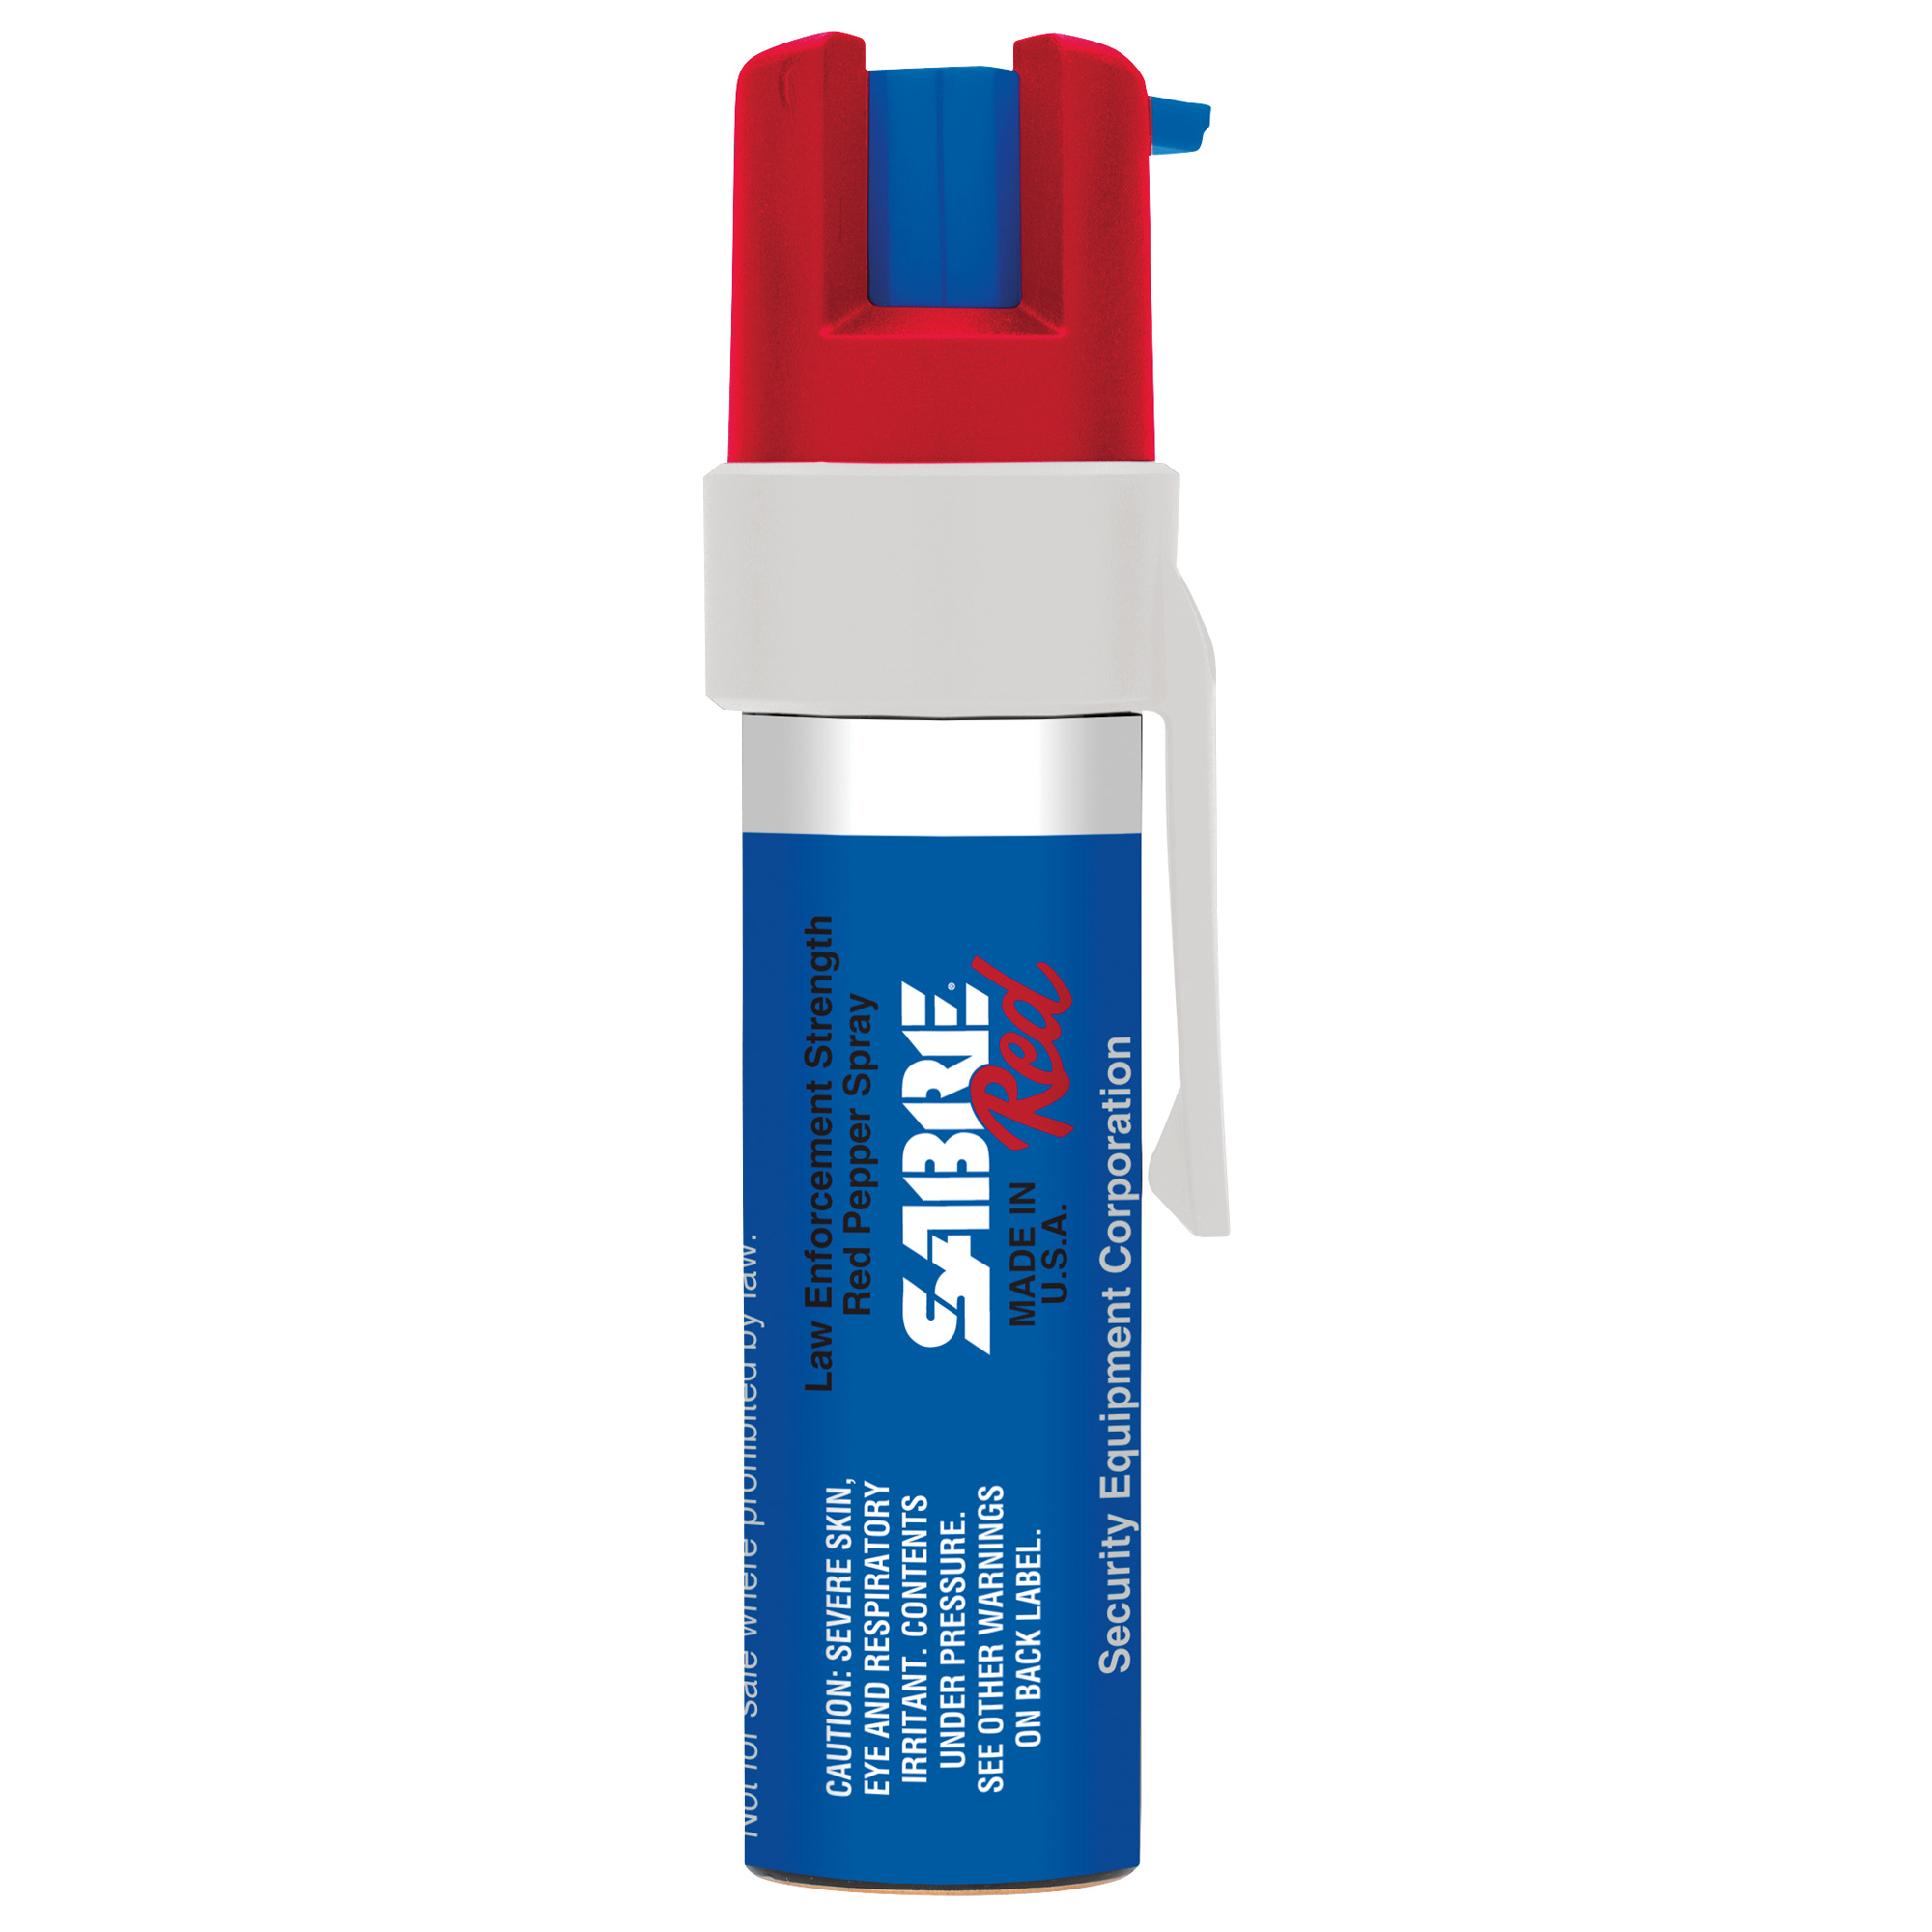 """SABRE provides best-in-class personal safety"""" home security"""" and law enforcement products to maximize your safety. SABRE is the world's largest pepper spray manufacturer"""" providing police-strength protection to consumers and law enforcement alike"""" all across the globe."""